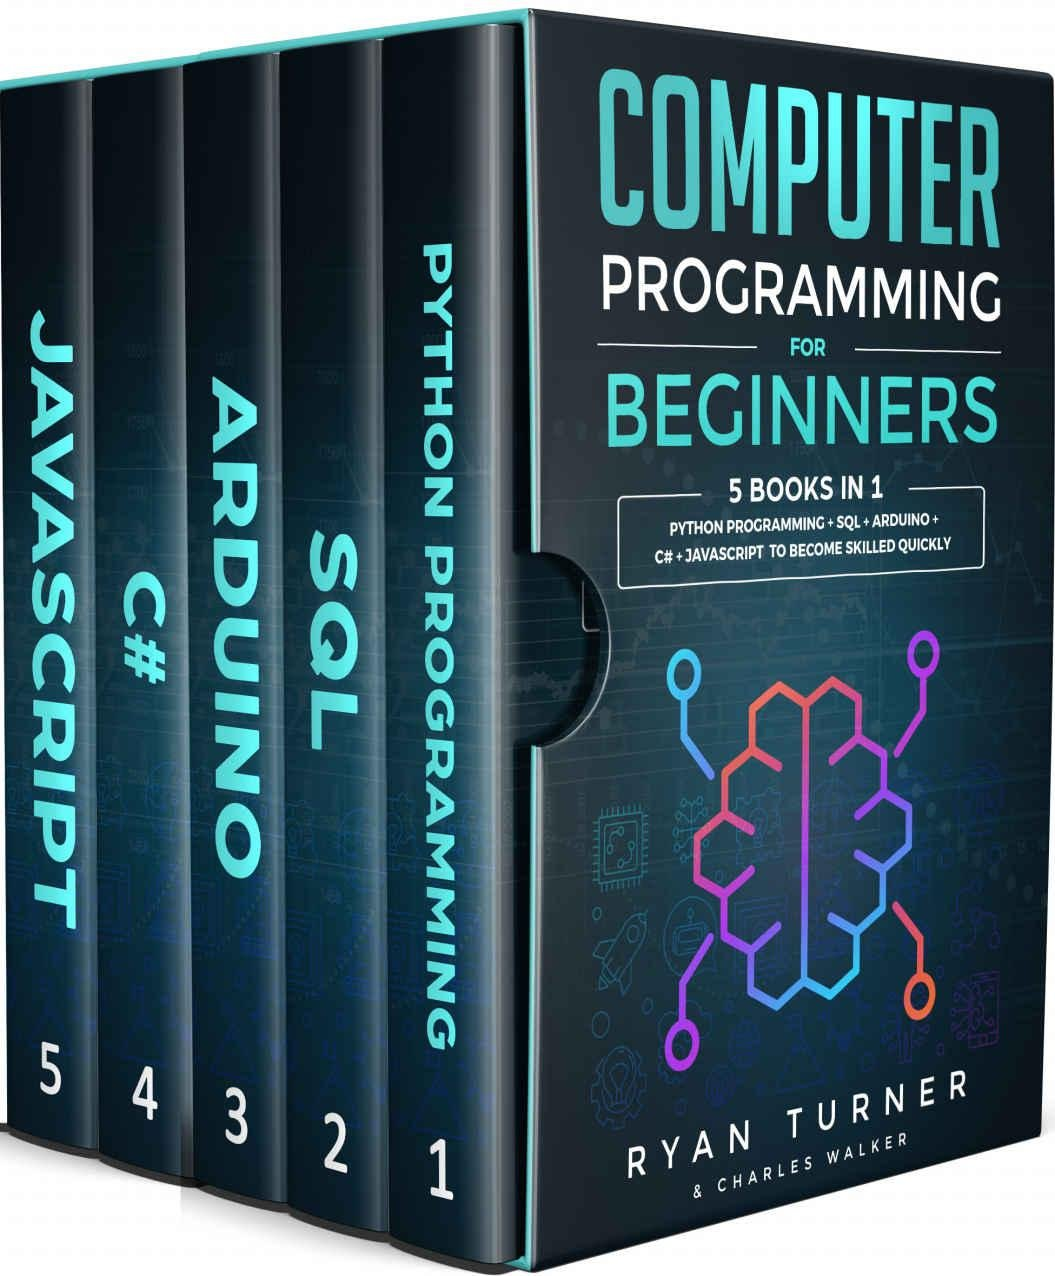 Download Computer Programming For Beginners 5 Books In 1